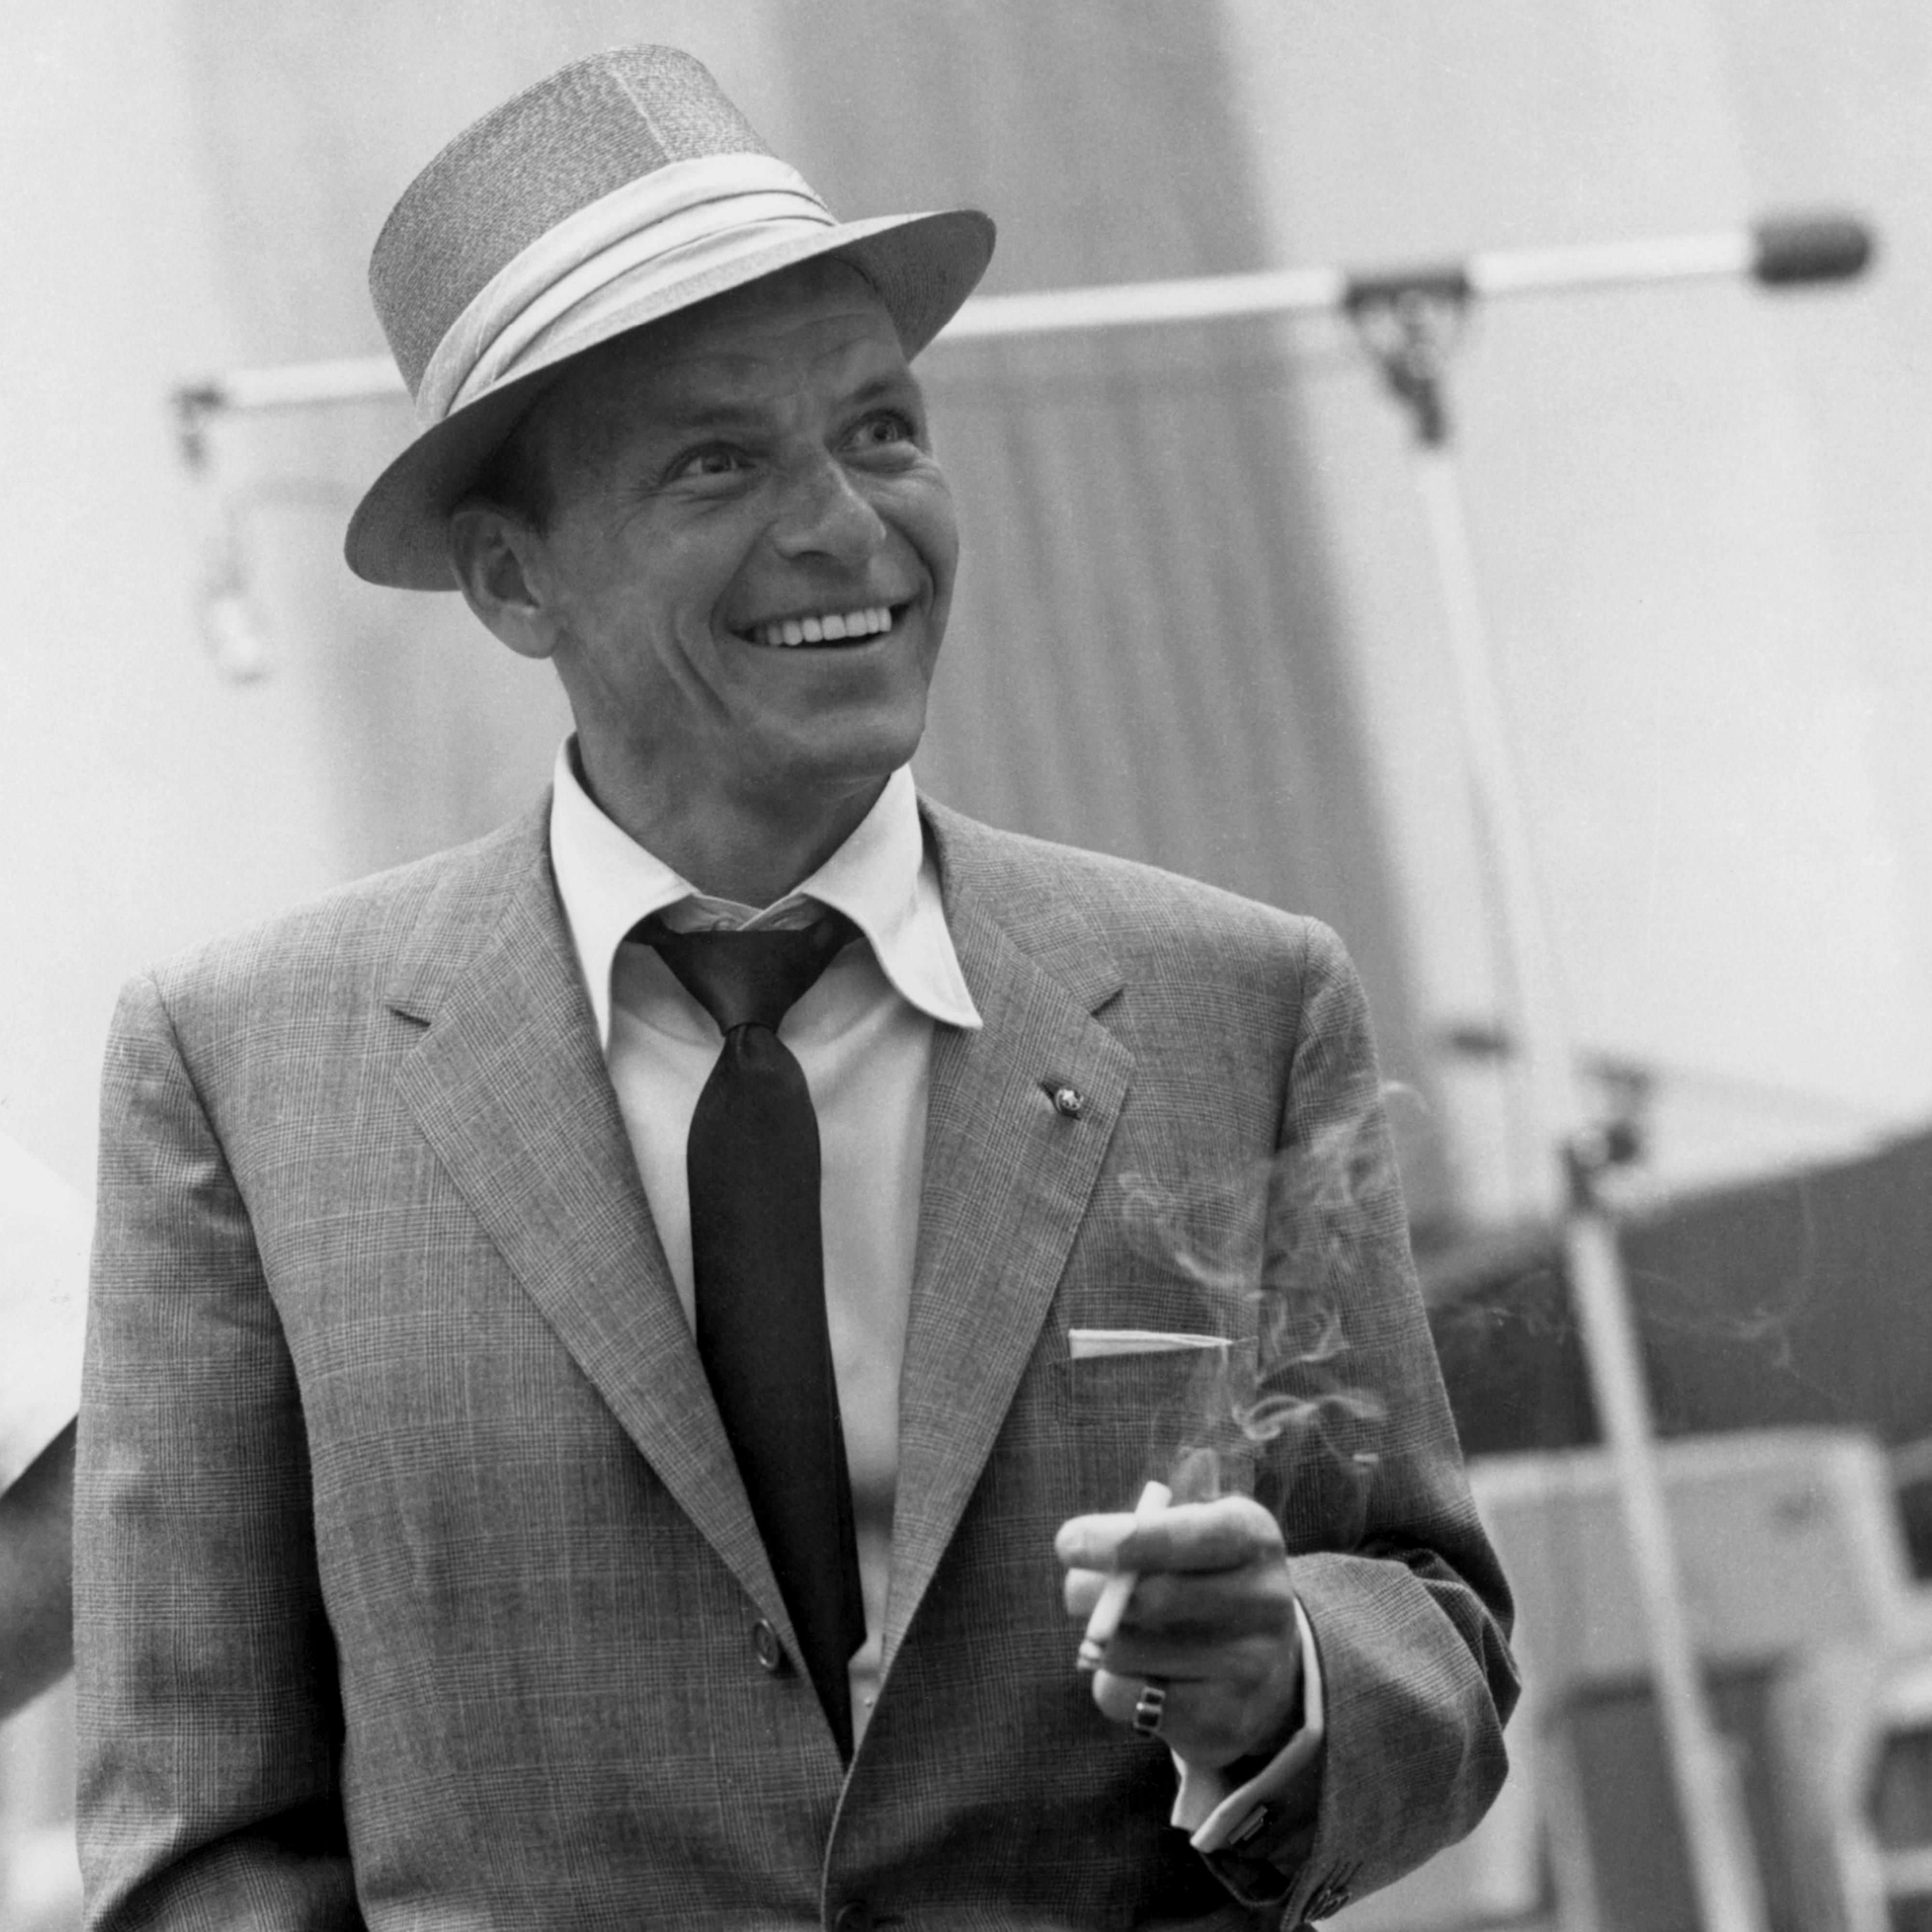 http://lounge.obviousmag.org/isso_compensa/2015/12/14/frank-sinatra_02.jpg